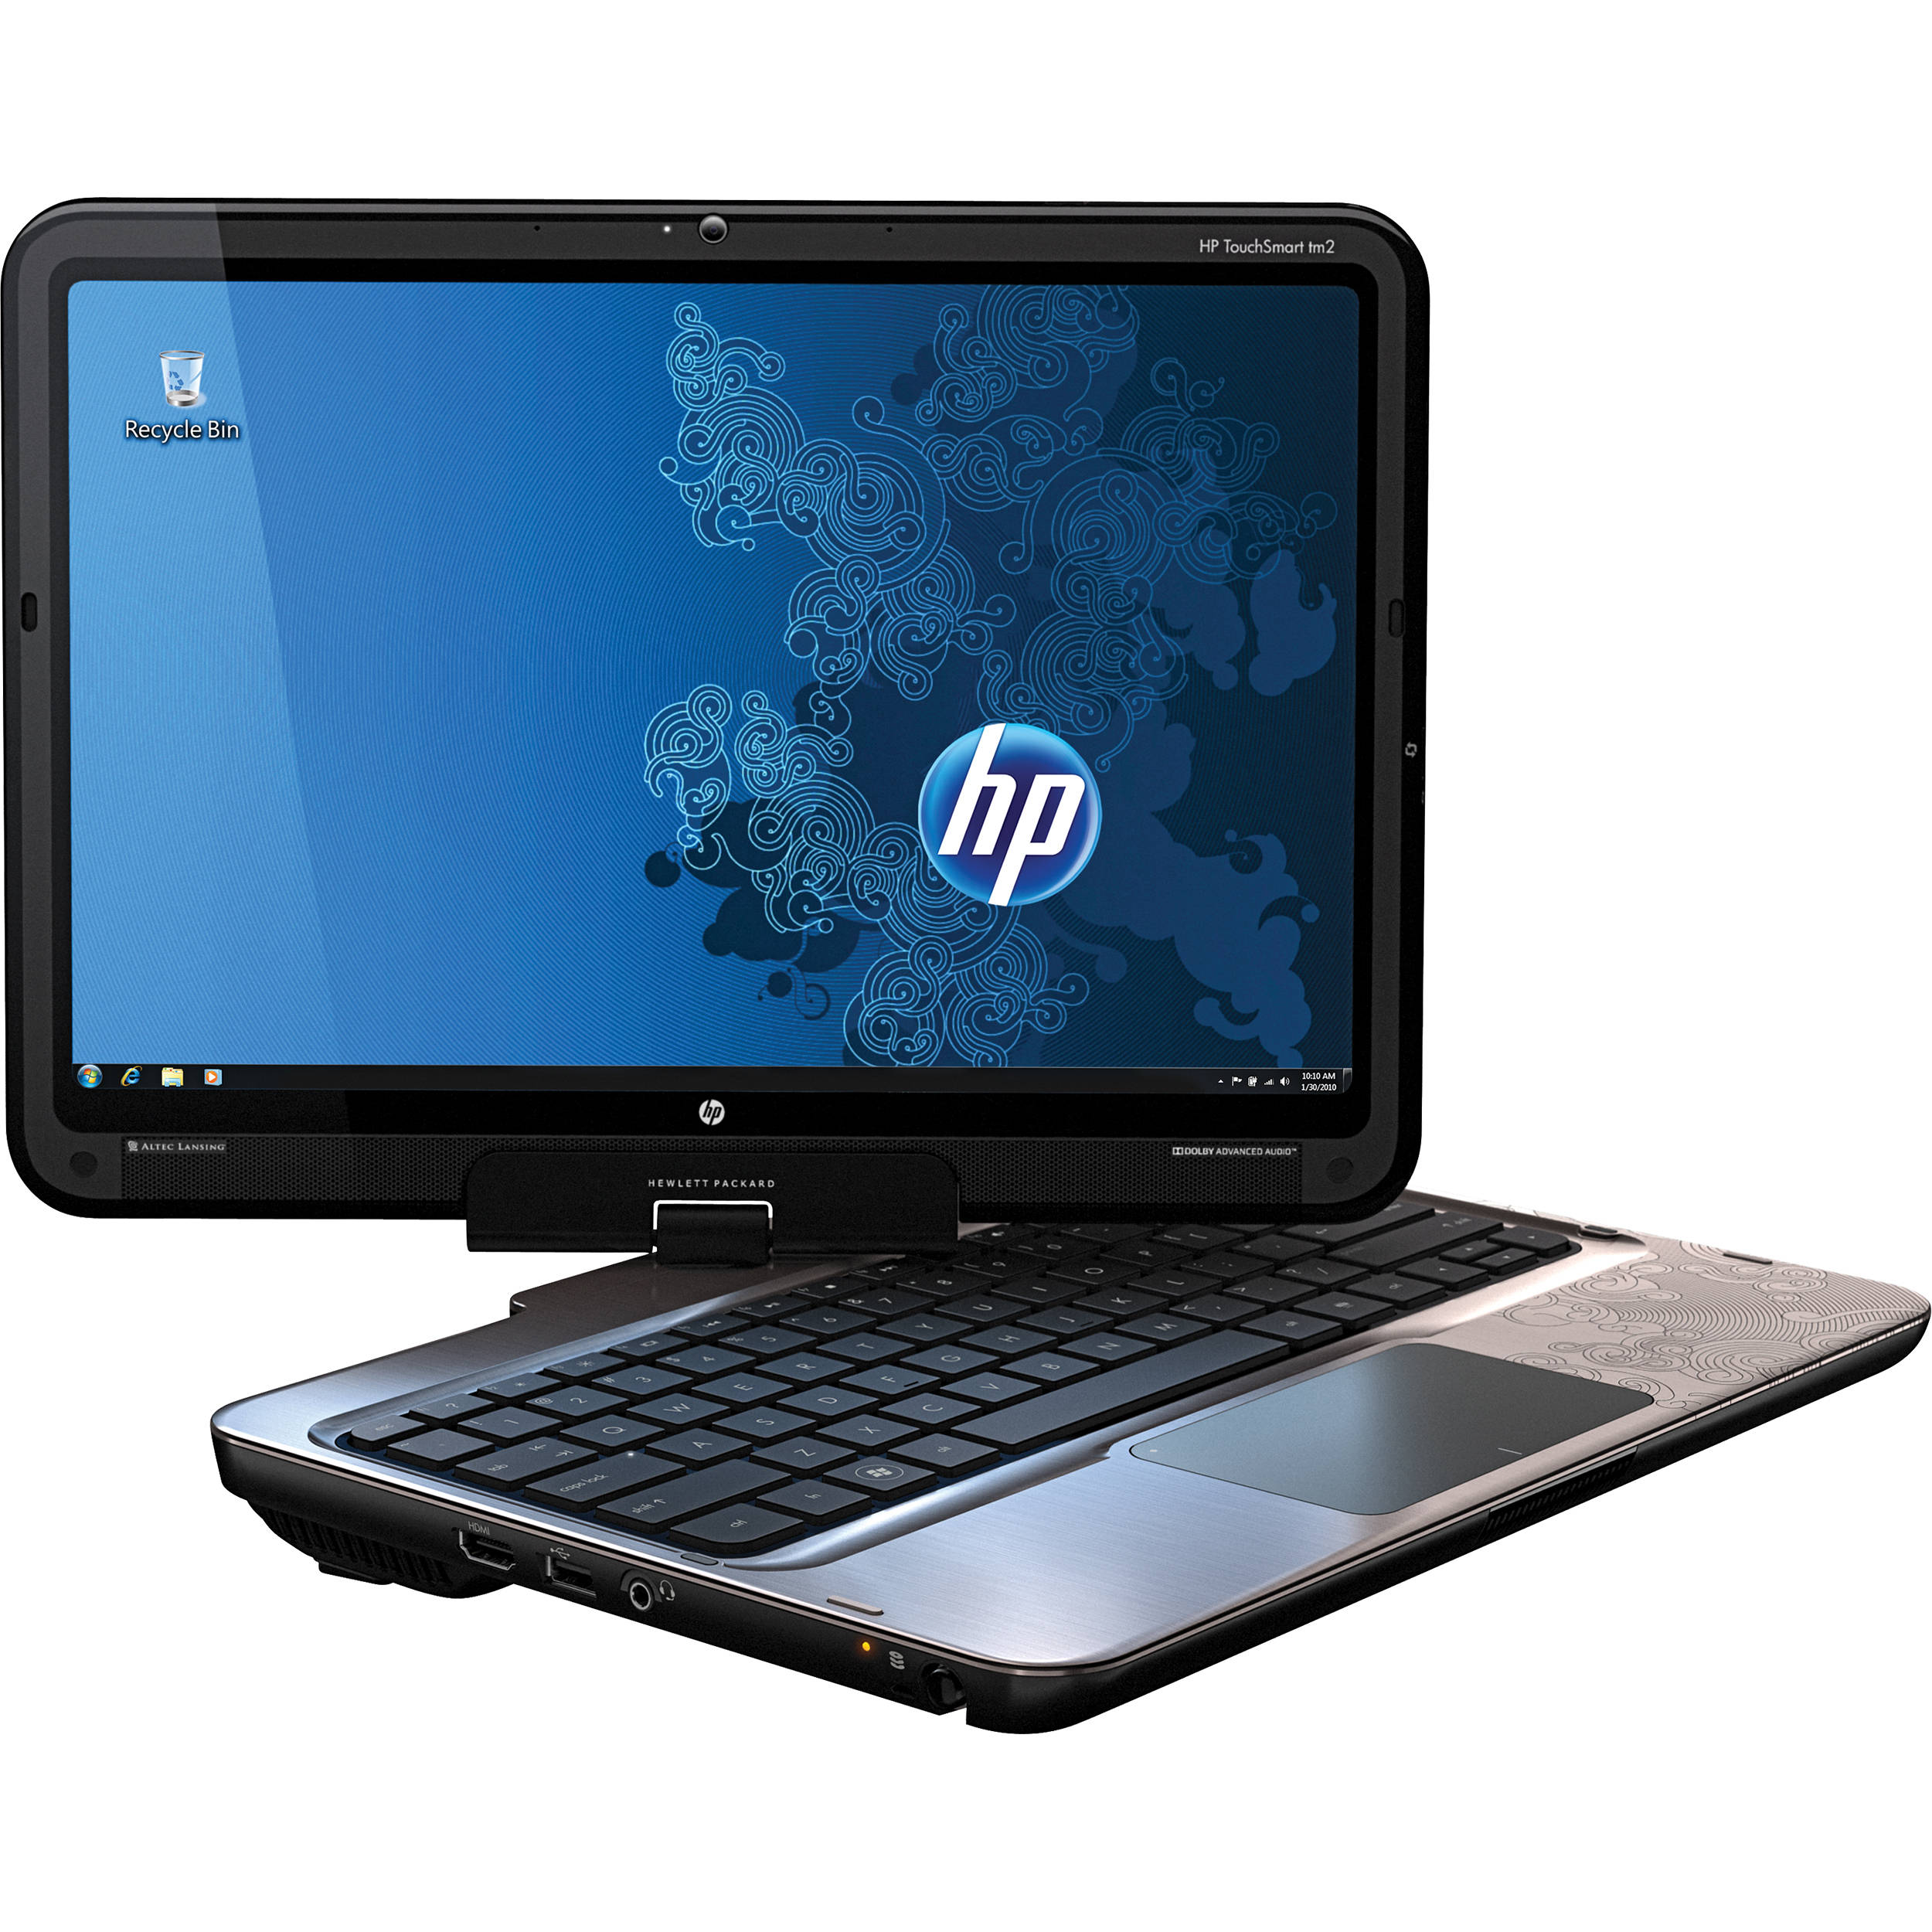 Hp Touchsmart Tm2 1070us 12 1 Quot Tablet Notebook Wa808ua Aba